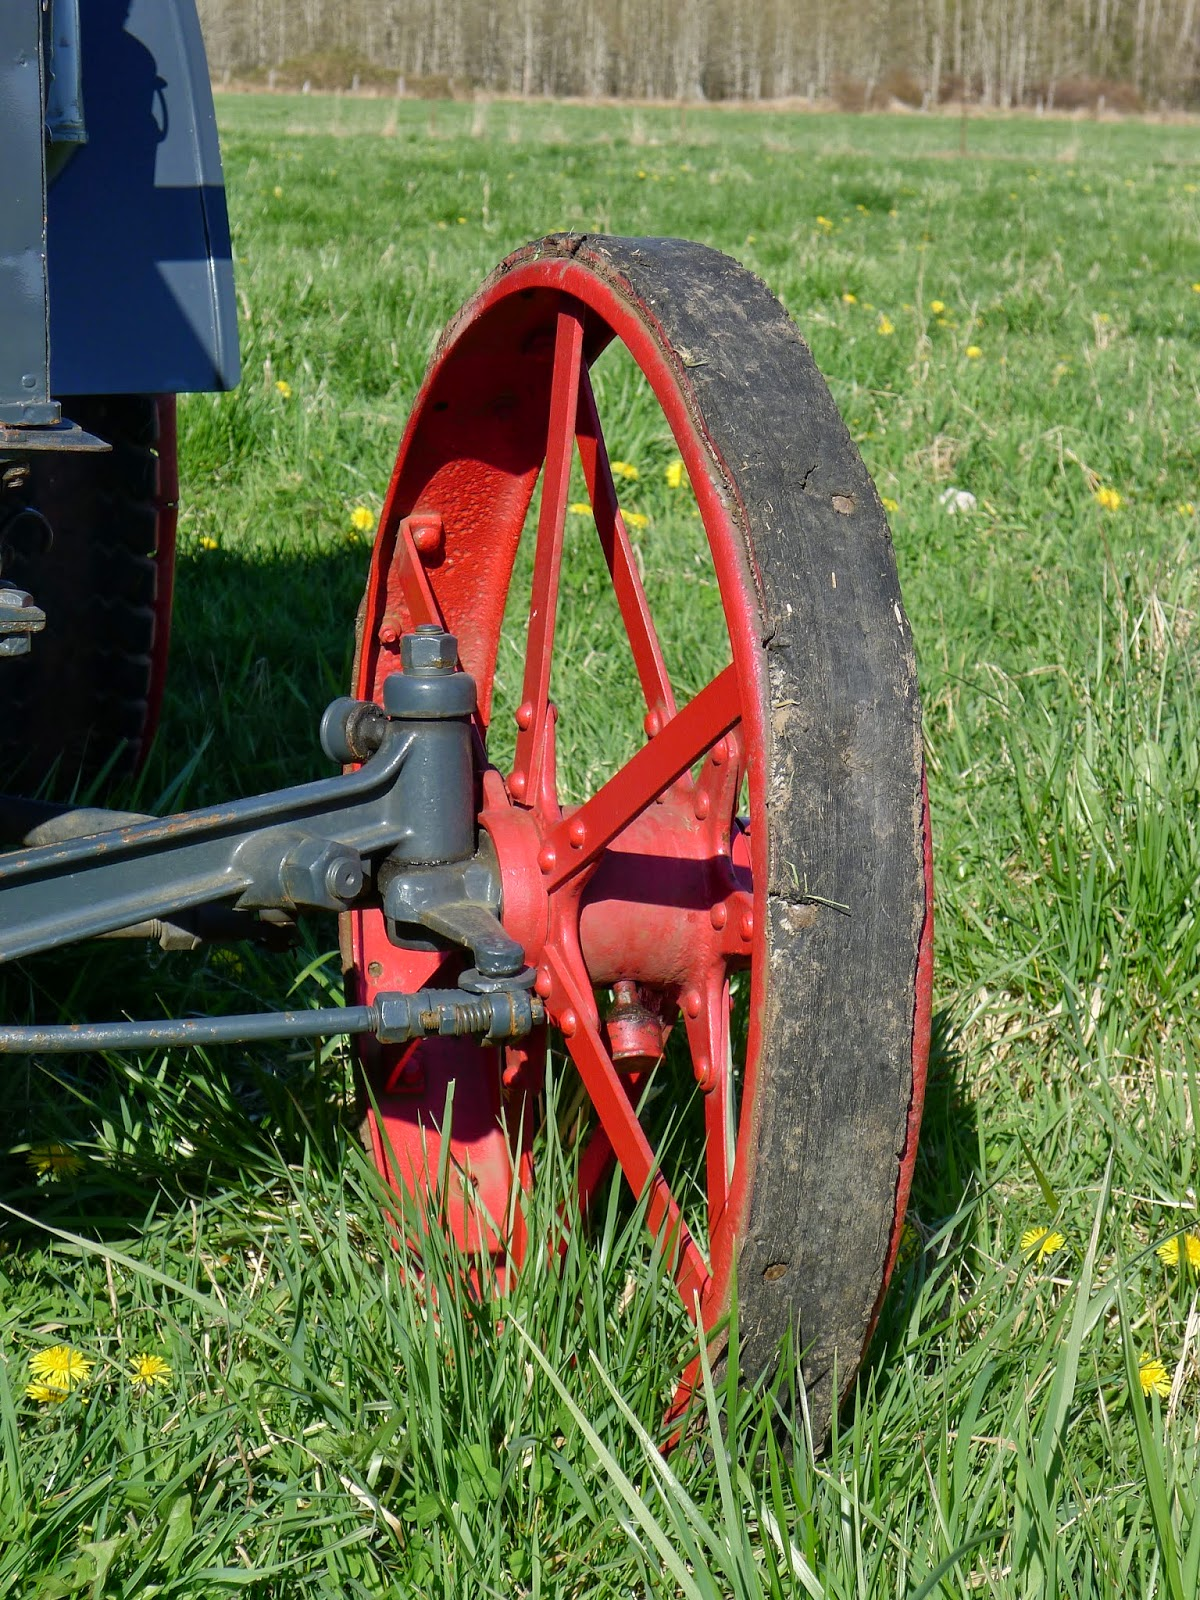 Antique Tractor Furniture : Good life northwest vintage tractors stationary engines